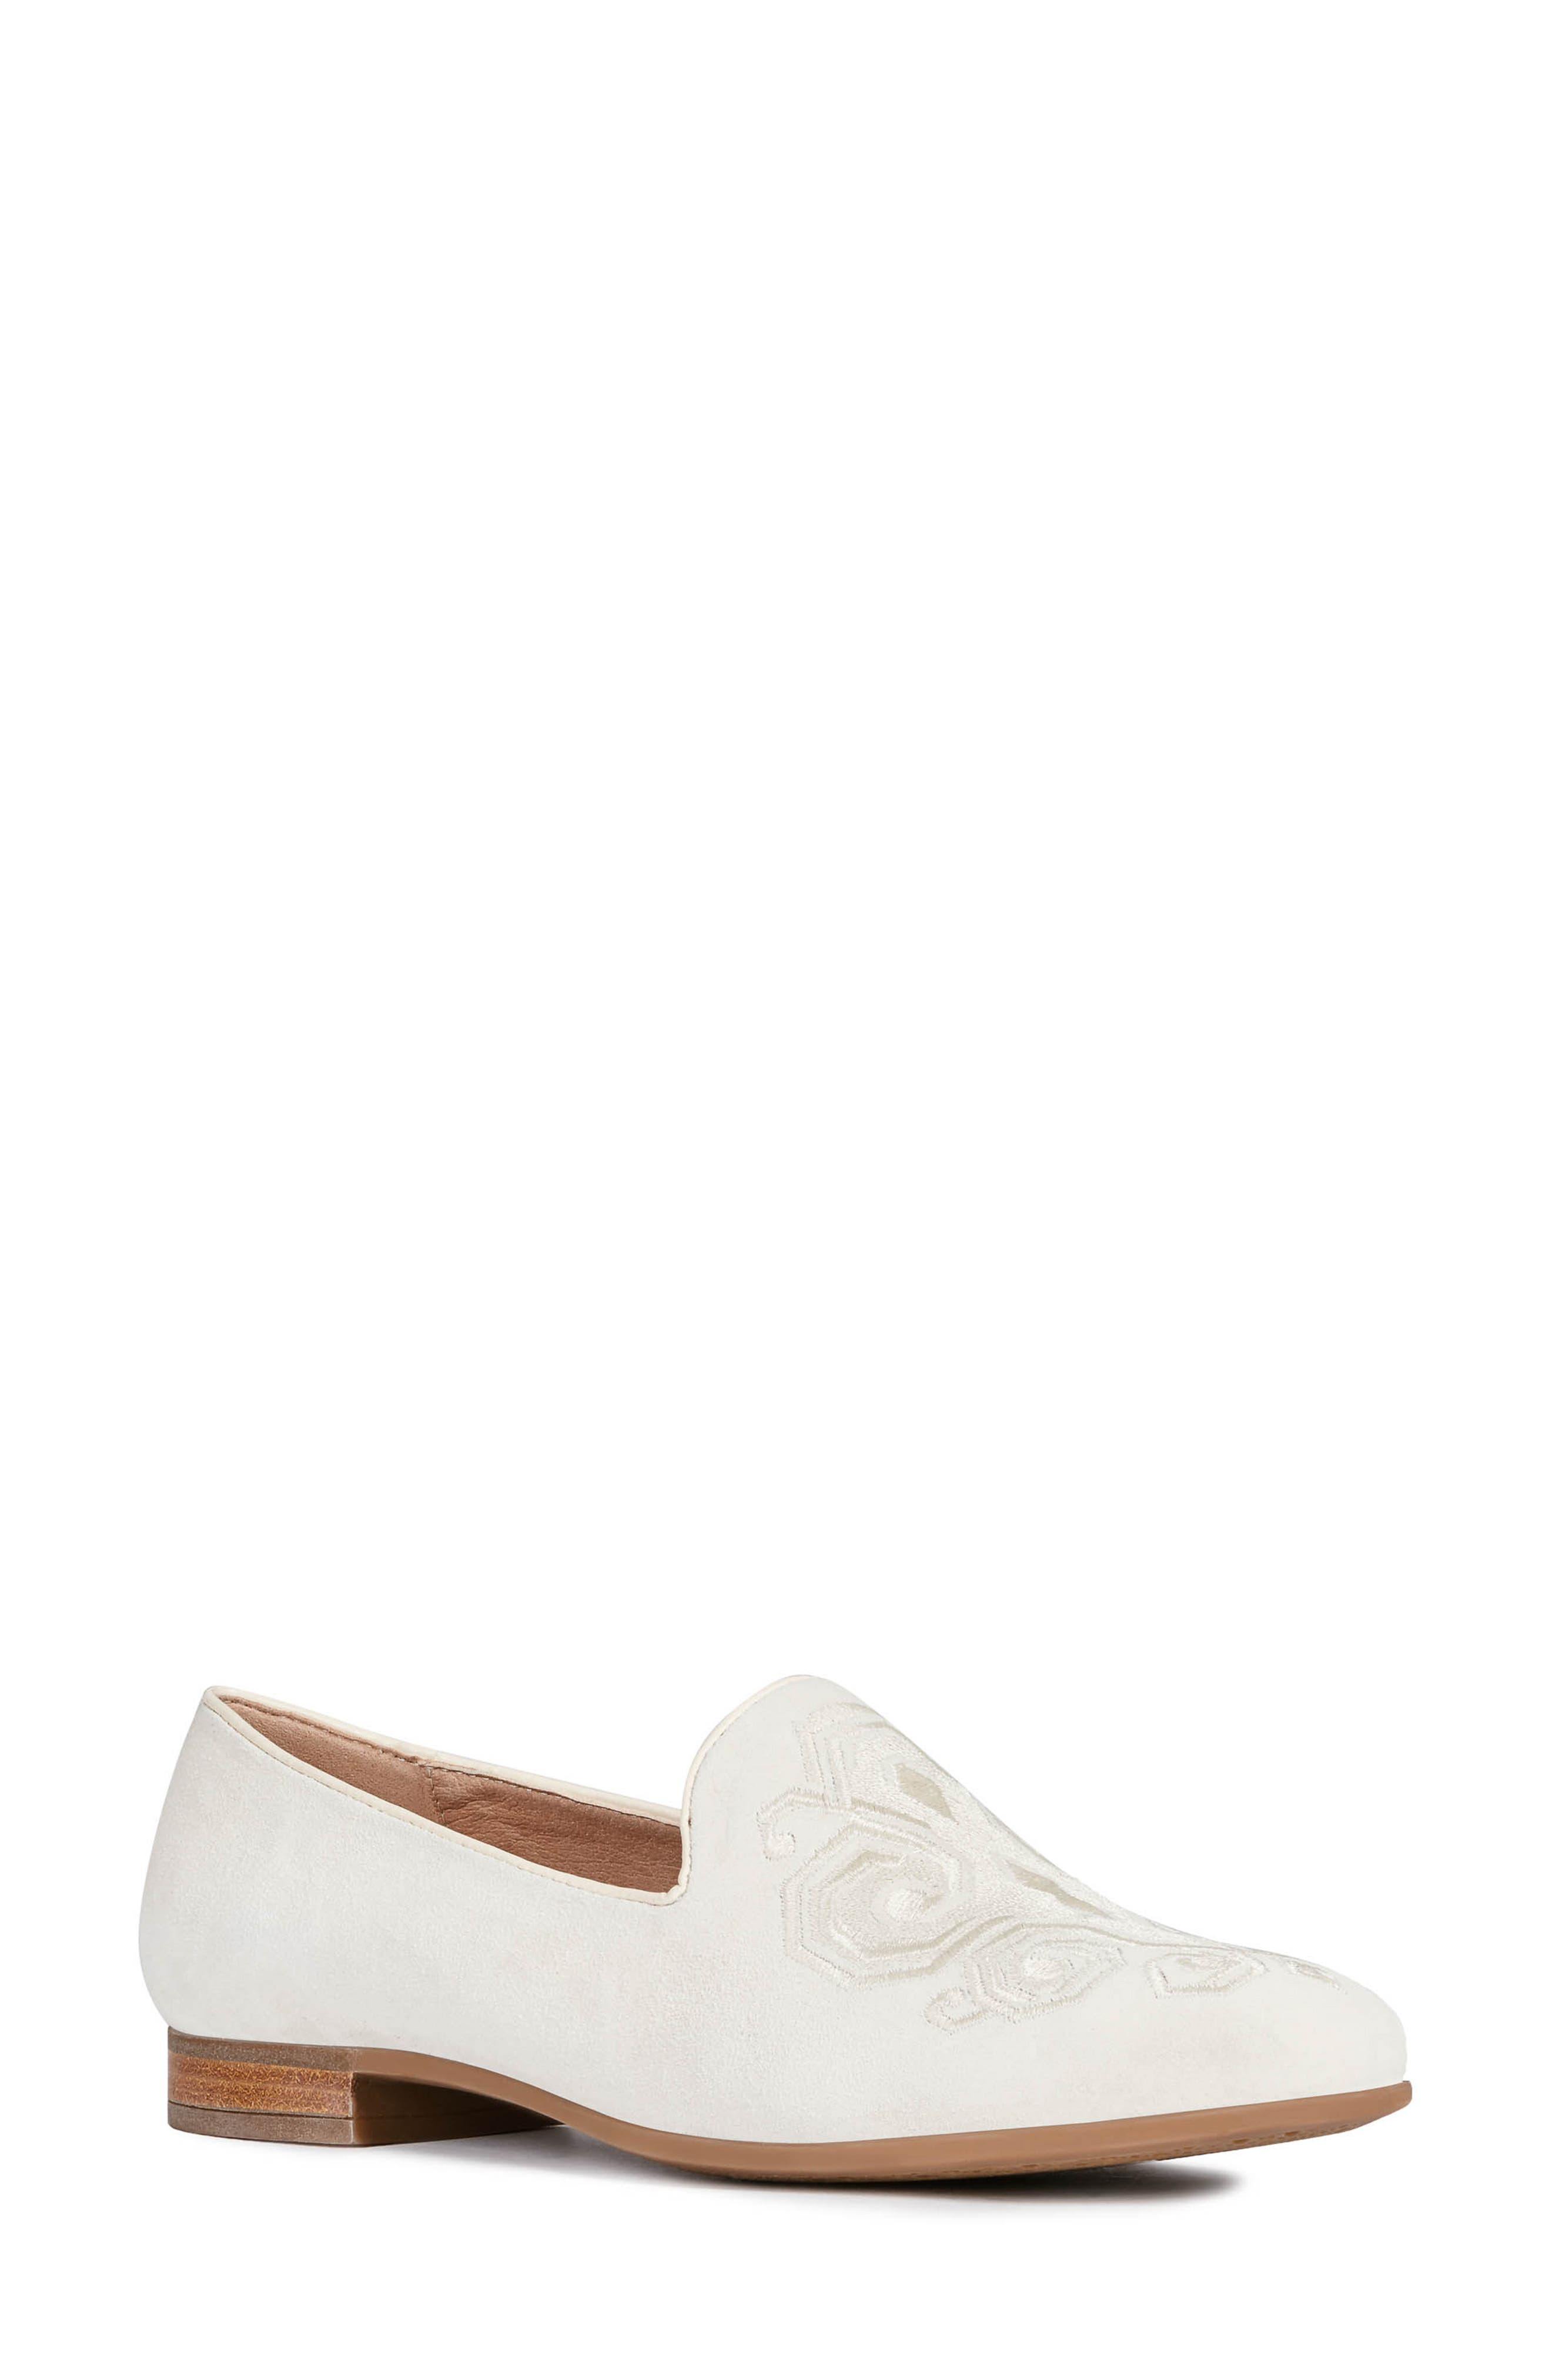 Geox Marlyna Loafer, Ivory